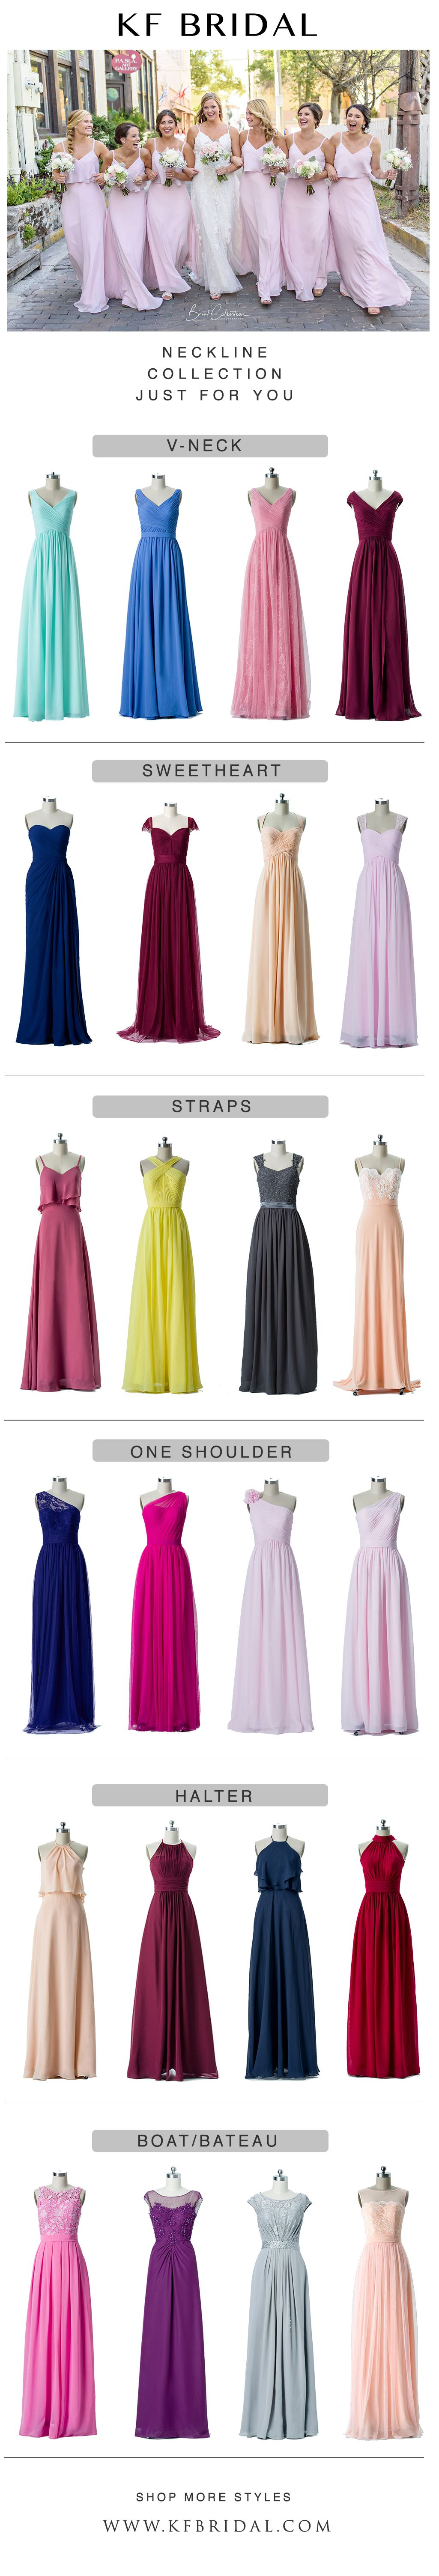 Kf bridal would like to help you choose your favorite neckline for